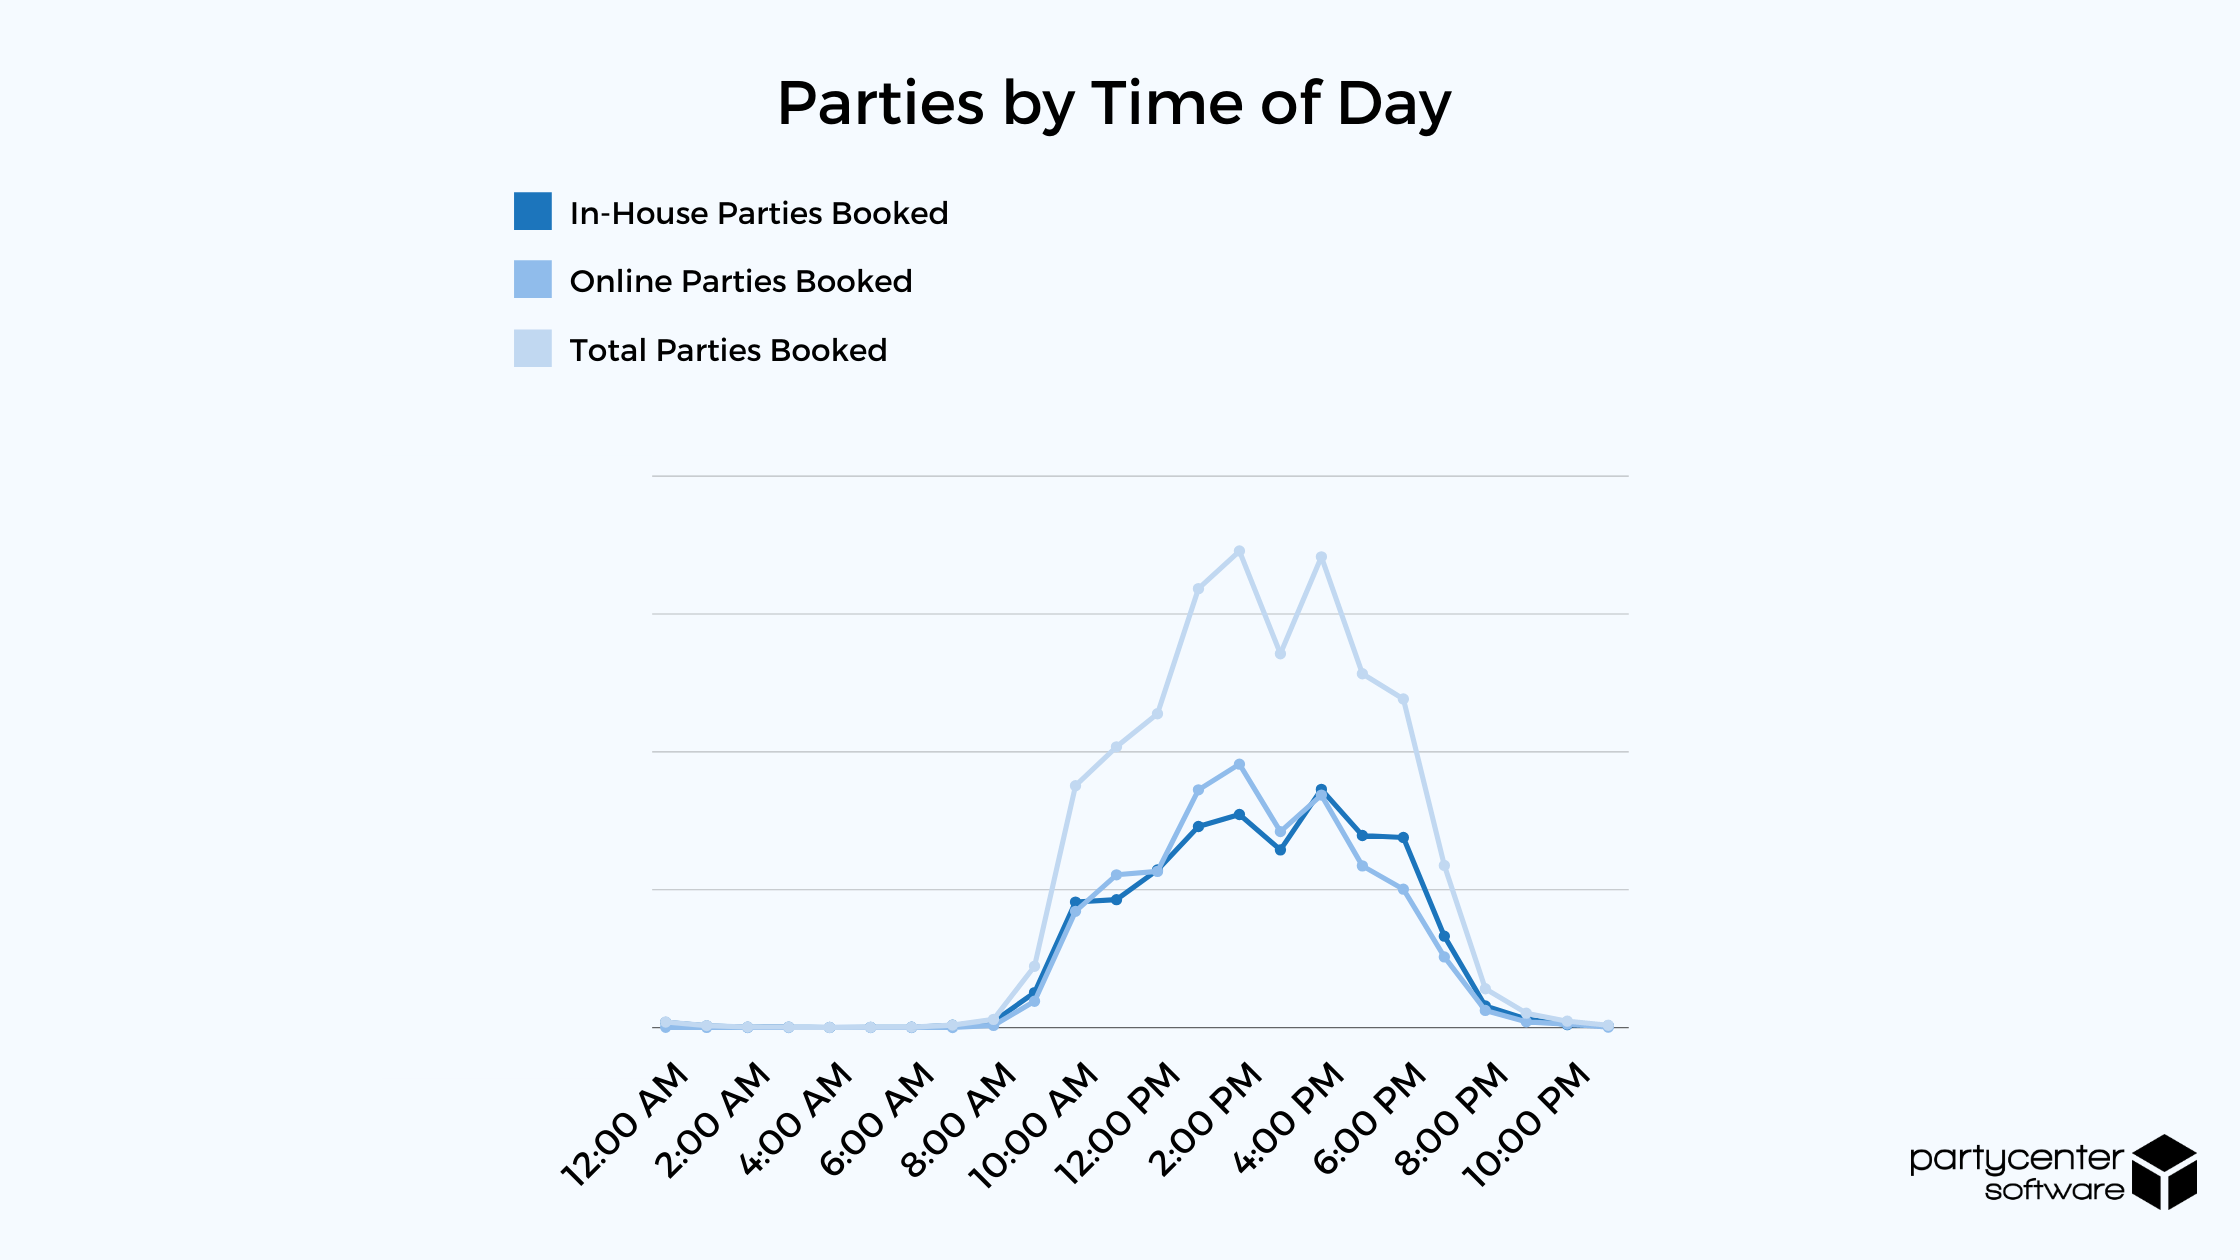 Parties by Time of Day - 2020